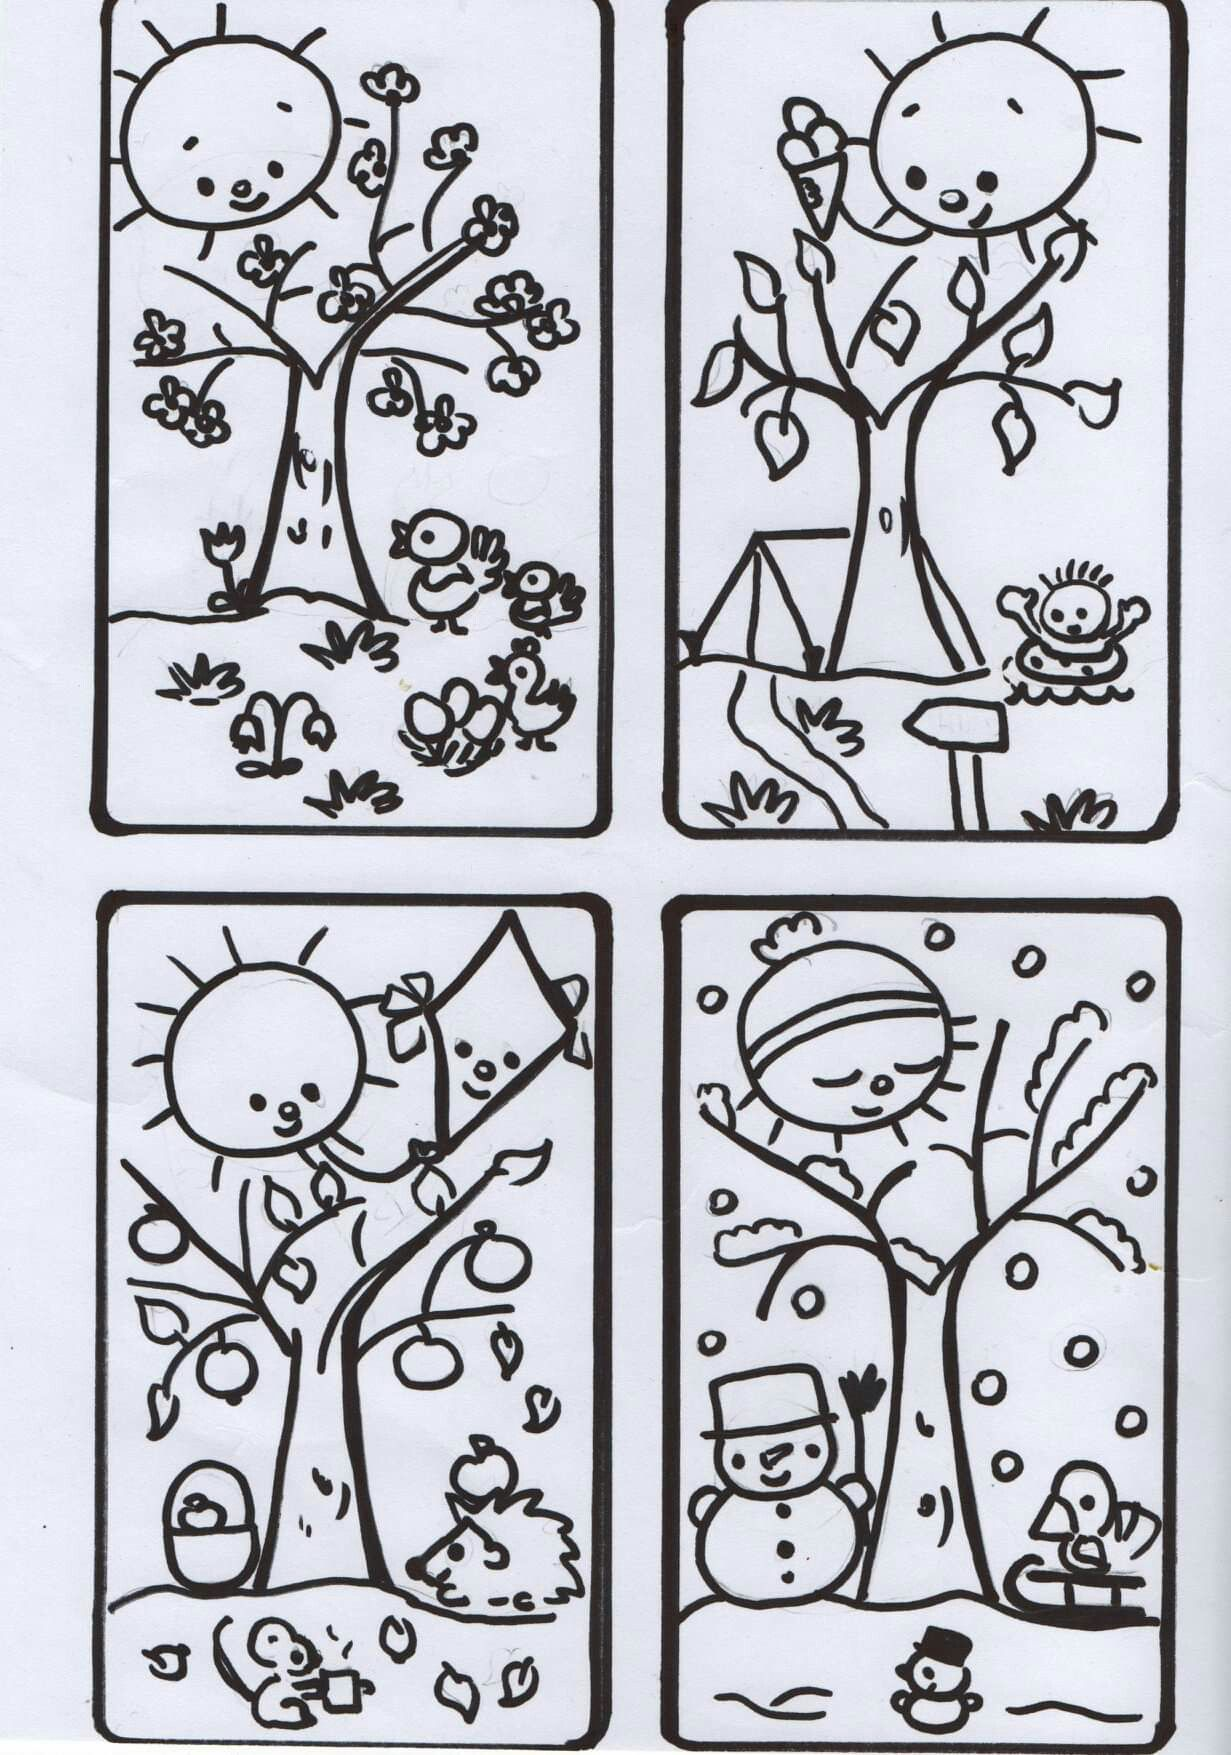 Pin By Zuzana On Rocne Obdobia Tracing Worksheets Preschool Coloring Pages Weather For Kids [ 1755 x 1231 Pixel ]